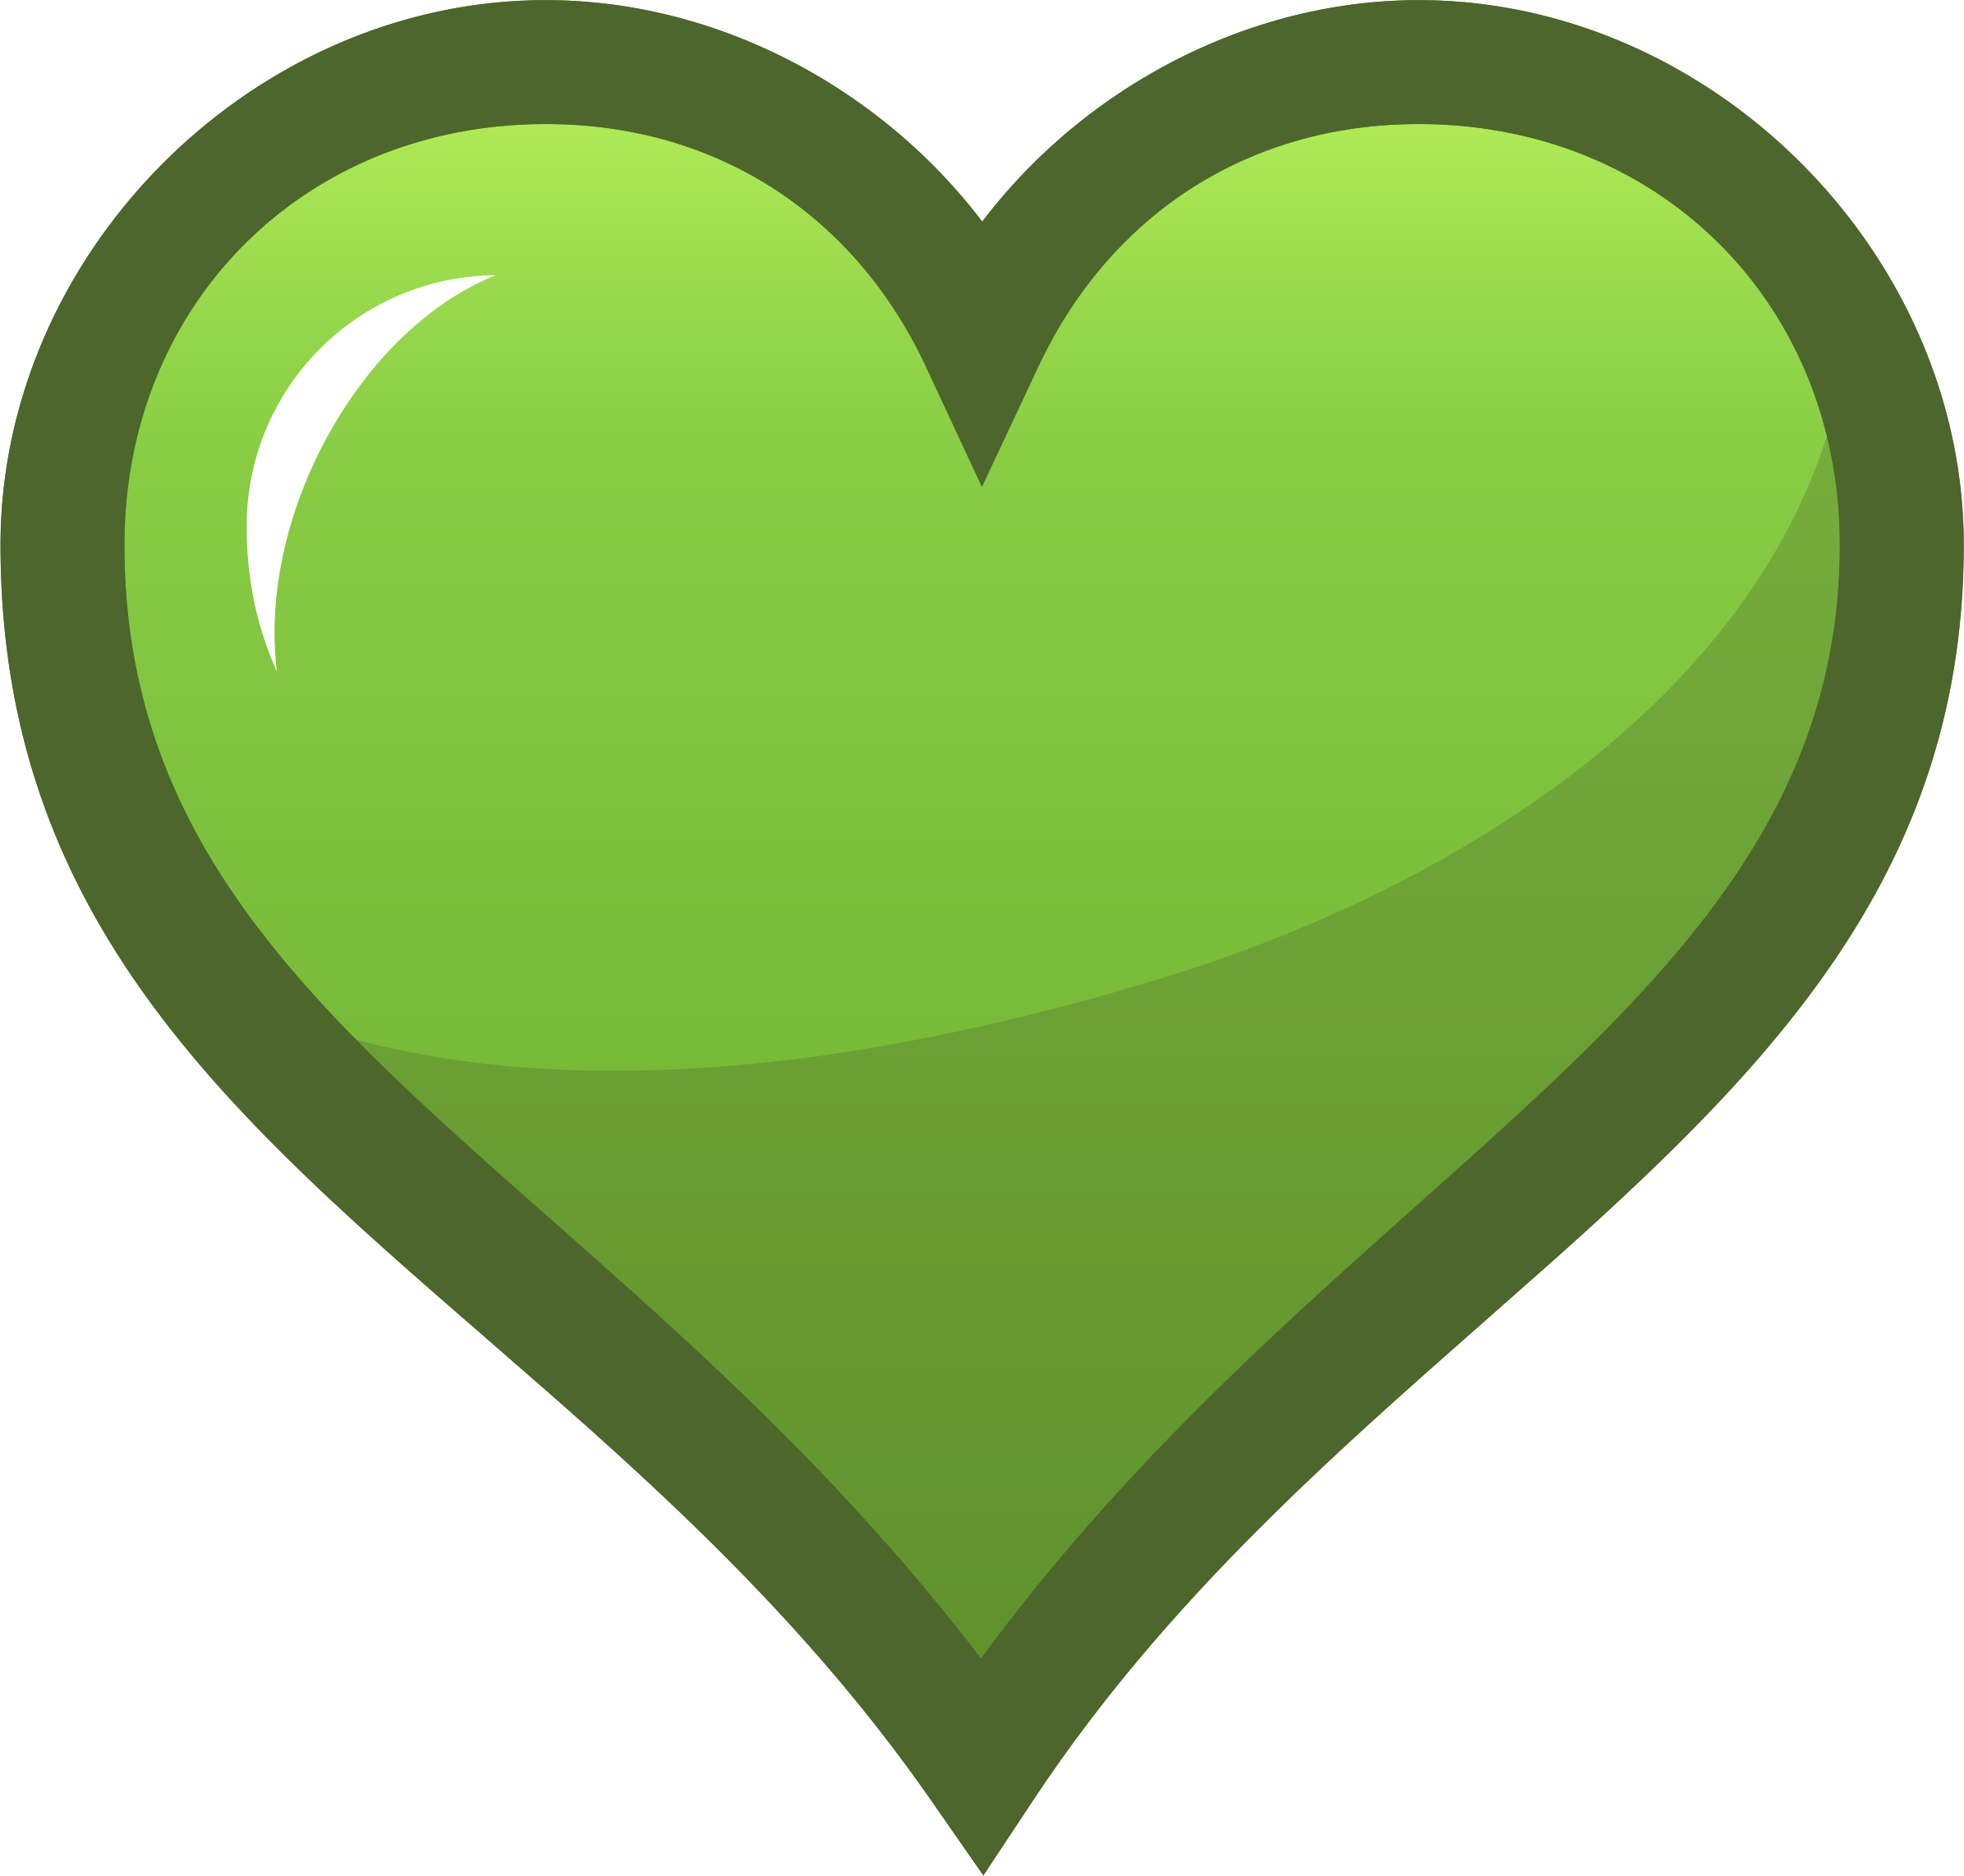 Green heart big image. Hearts clipart icon